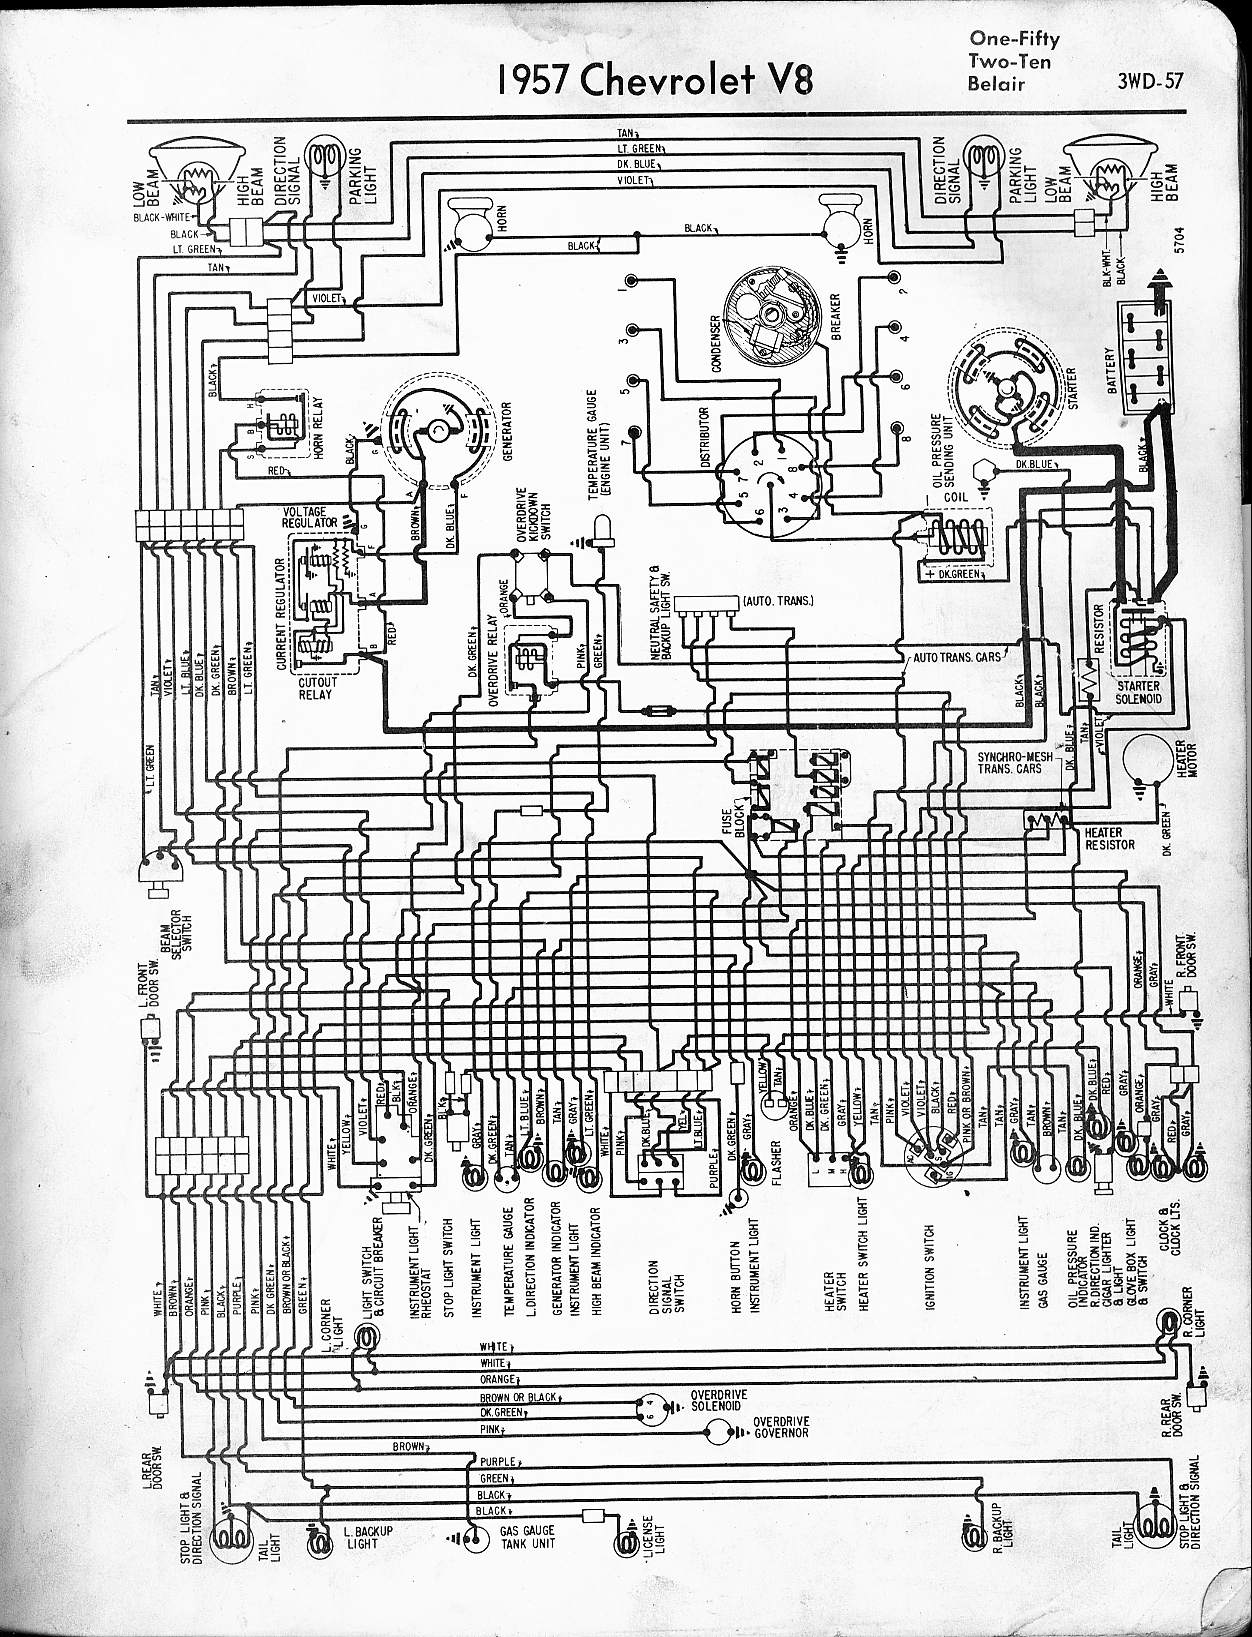 Mwirechev Wd on 1955 Thunderbird Wiring Diagram